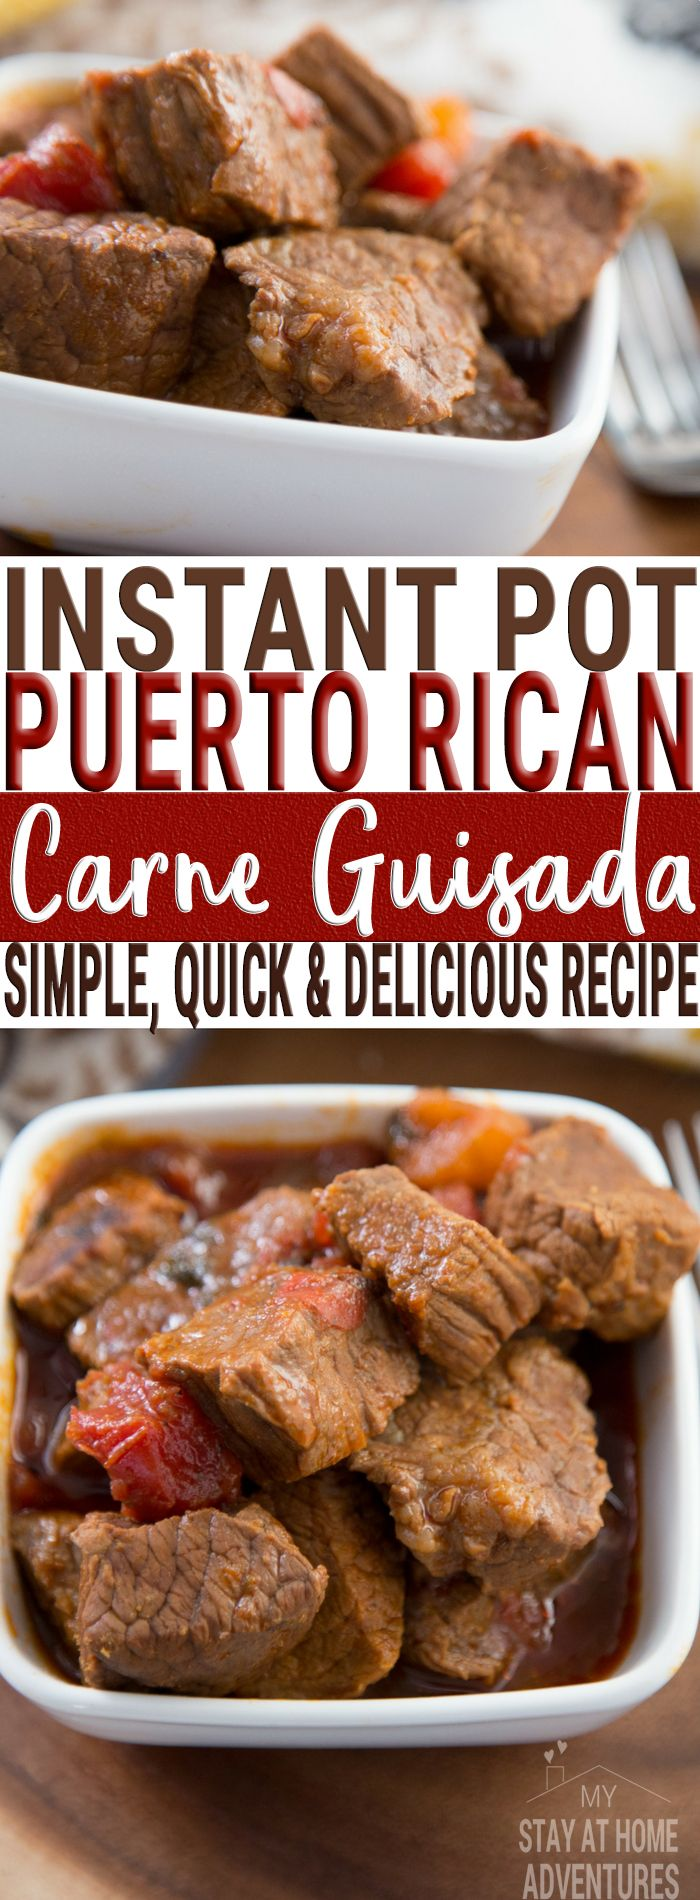 Try this simple and delicious Puerto Rican Carne Guisada or Puerot Rican Beef Stew that anyone can create! Use your Instant pot add these ingredients and you will enjoy this meal in no time!